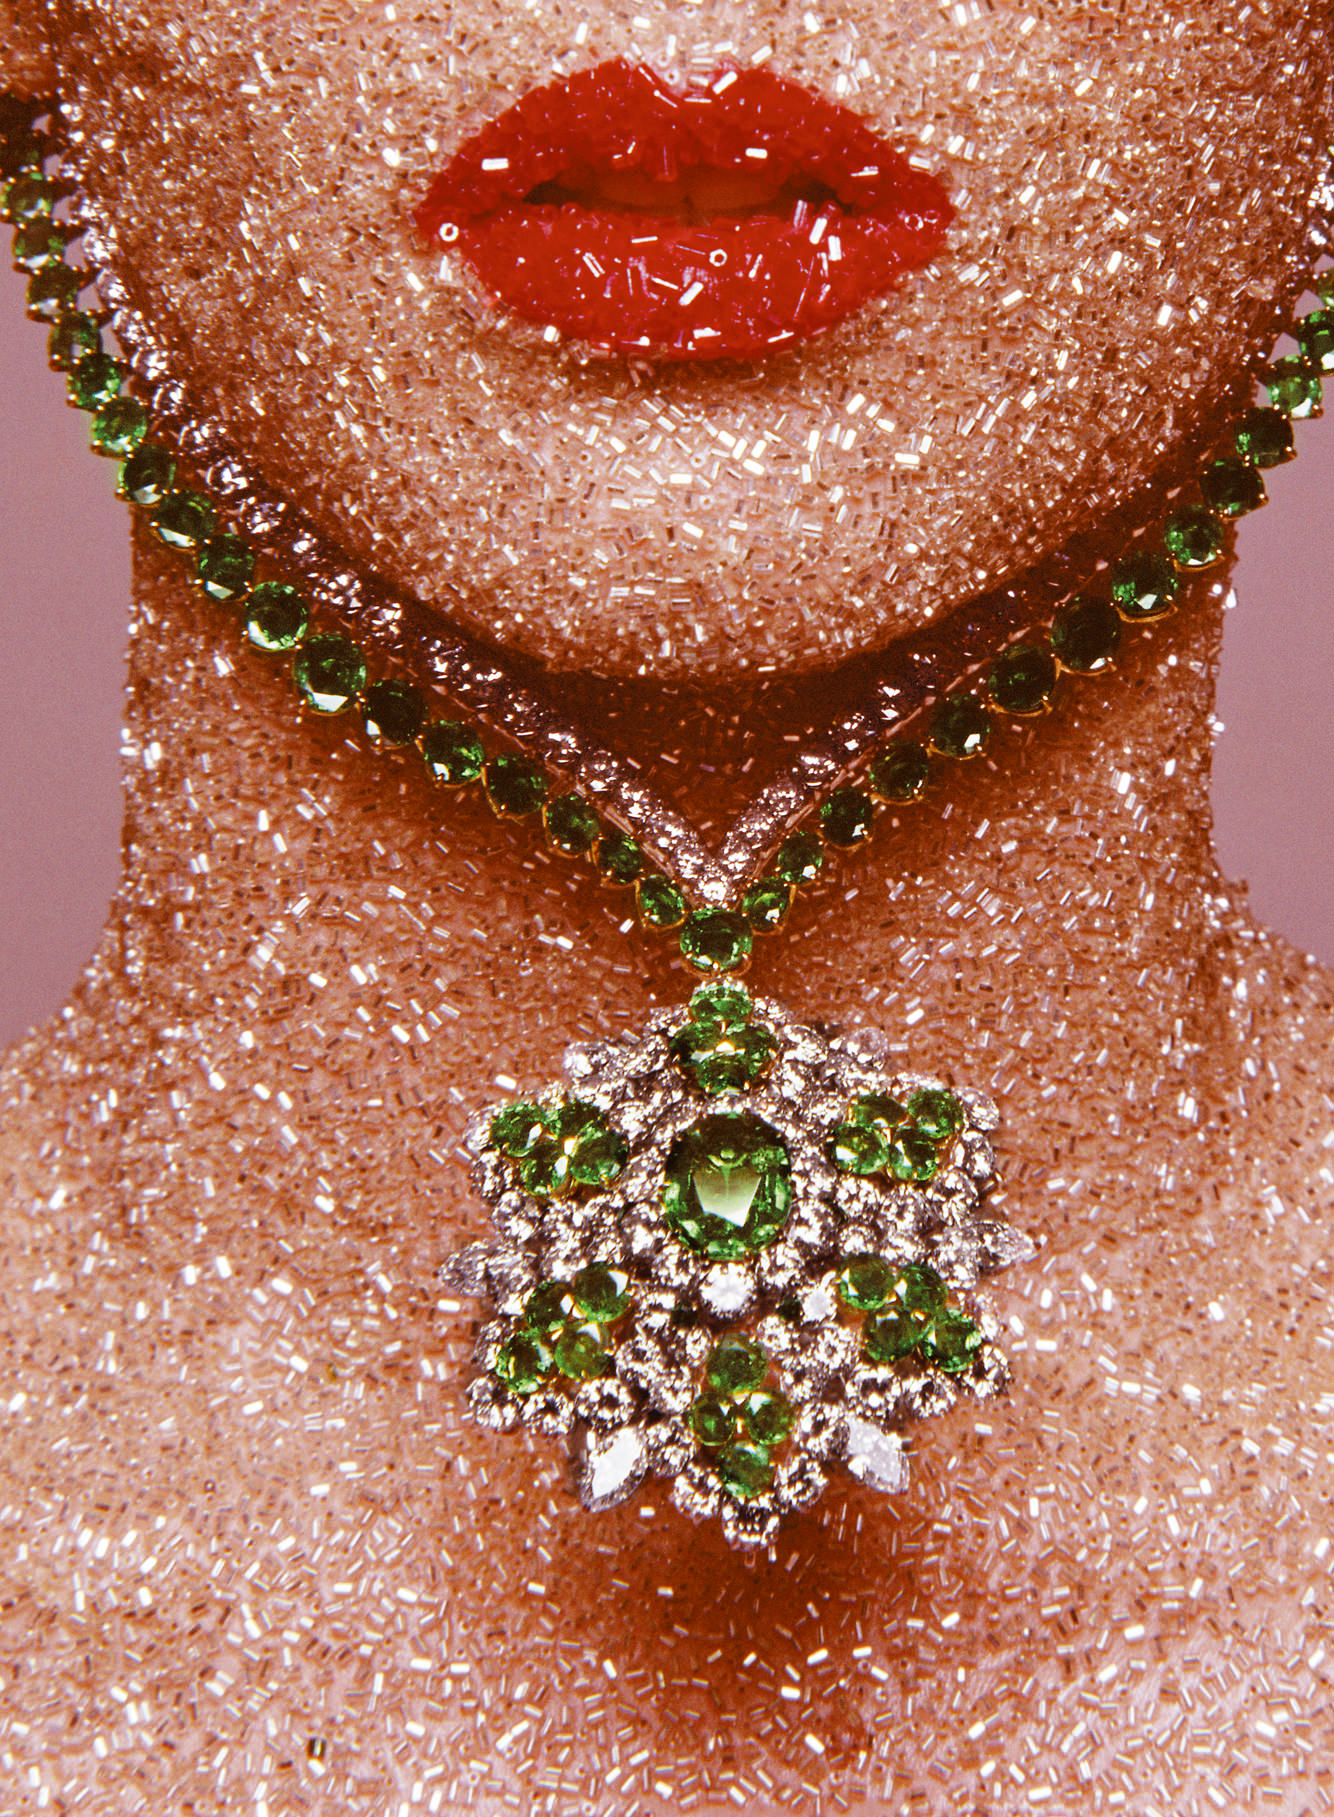 Van Cleef & Arpels, décembre 1969. The Guy Bourdin Estate, 2016. Courtesy of Art + Commerce